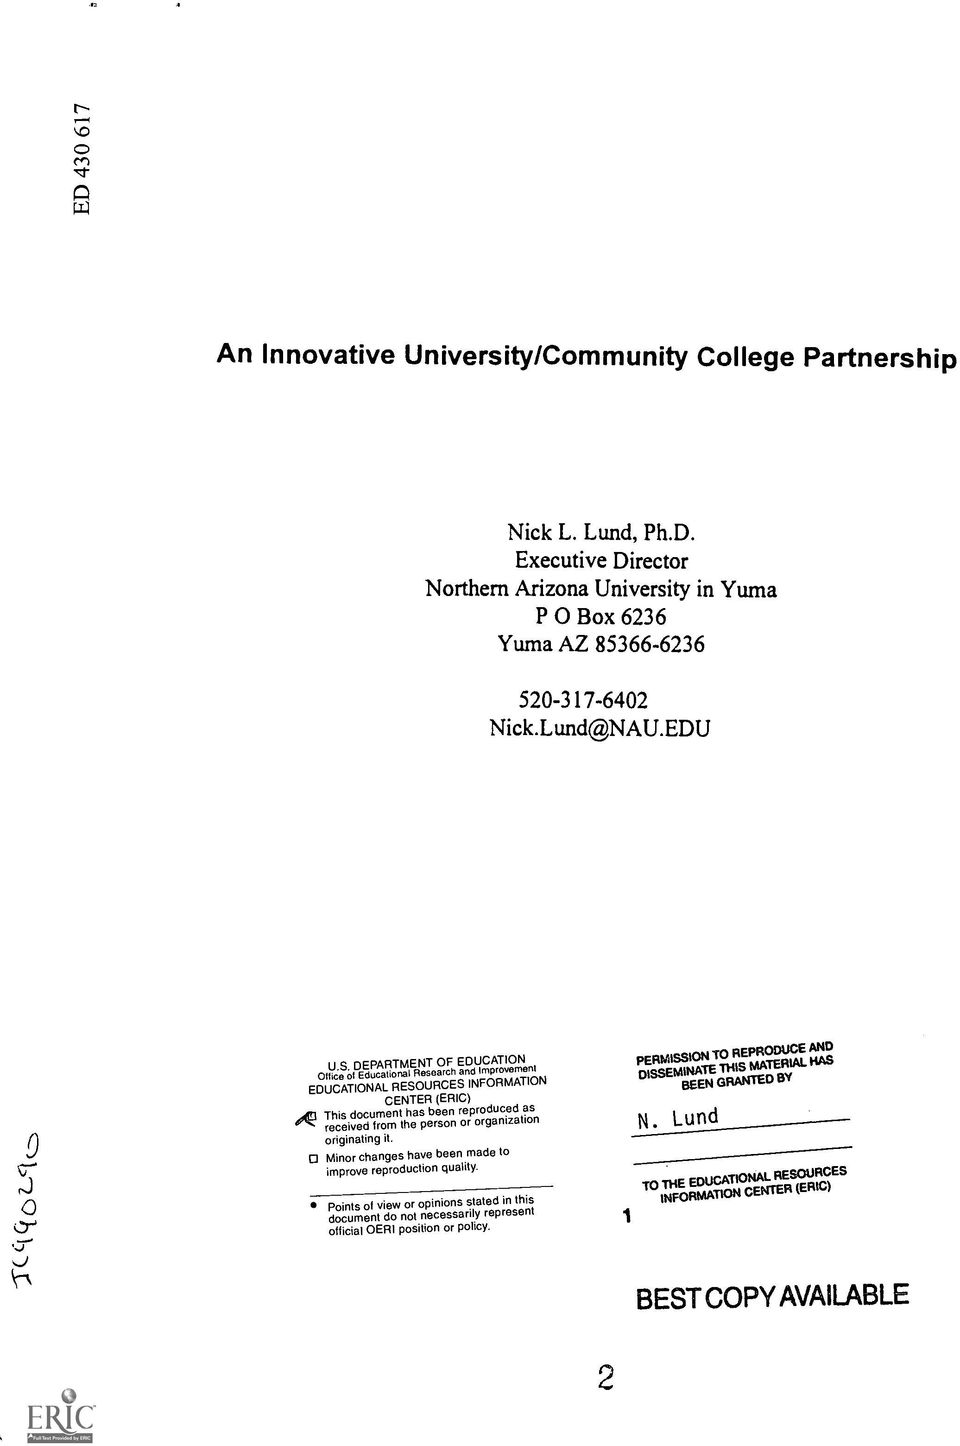 DEPARTMENT OF EDUCATION and Improvement Office of Educational Research EDUCATIONAL RESOURCES INFORMATION CENTER (ERIC) ADI This document has been reproduced as received from the person or